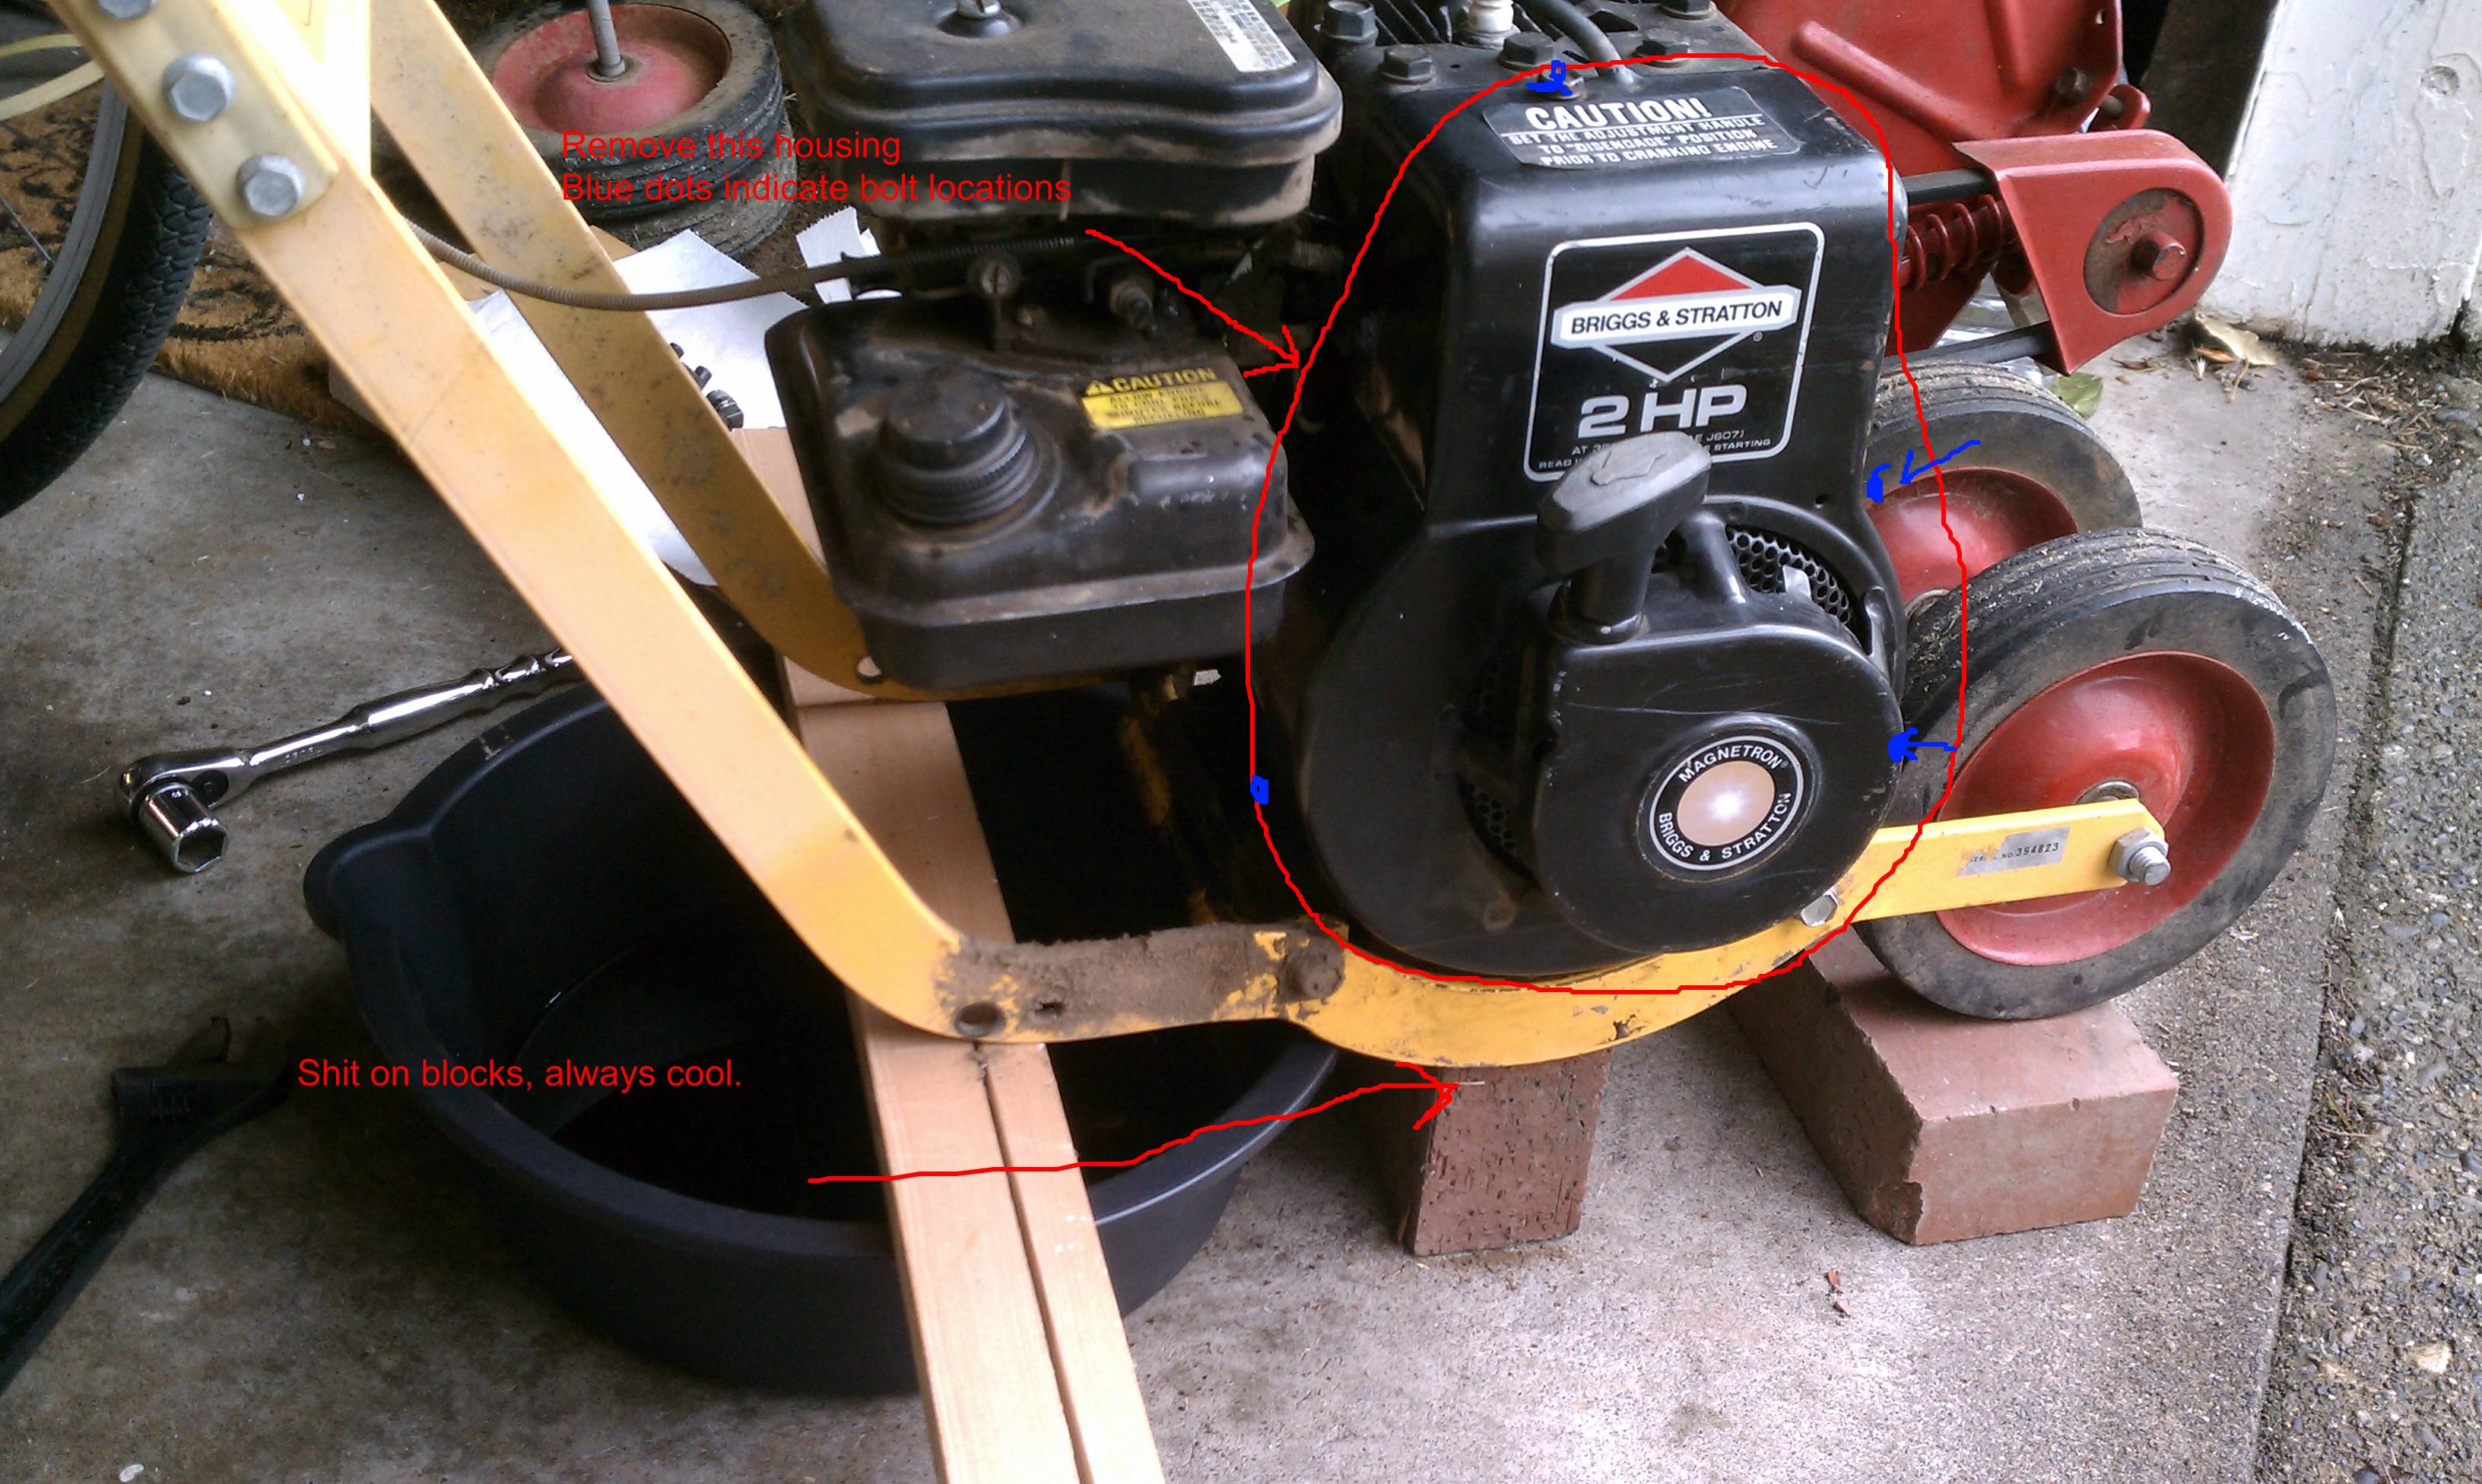 Sticky/Squealing Ratchet Starter Briggs and Stratton